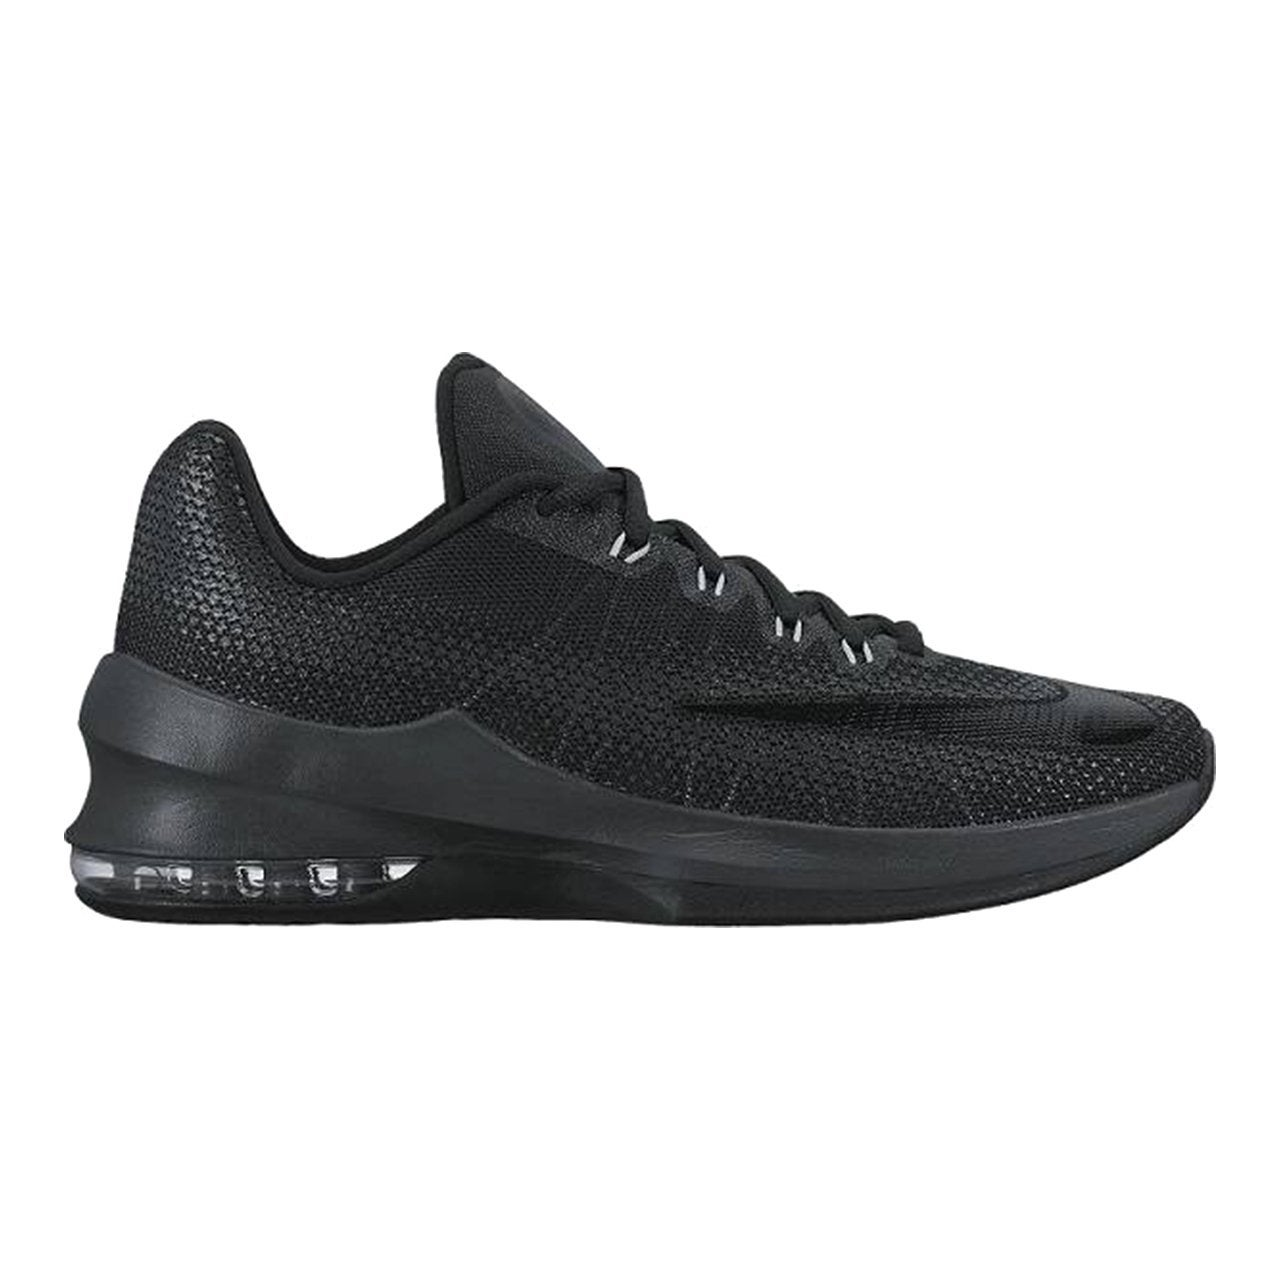 wholesale dealer 799f0 e8565 Shop Men s Nike Air Max Infuriate Low Basketball Shoe Black Anthracite Dark  Grey, US Men - black anthracite dark grey - Free Shipping Today - Overstock  - ...